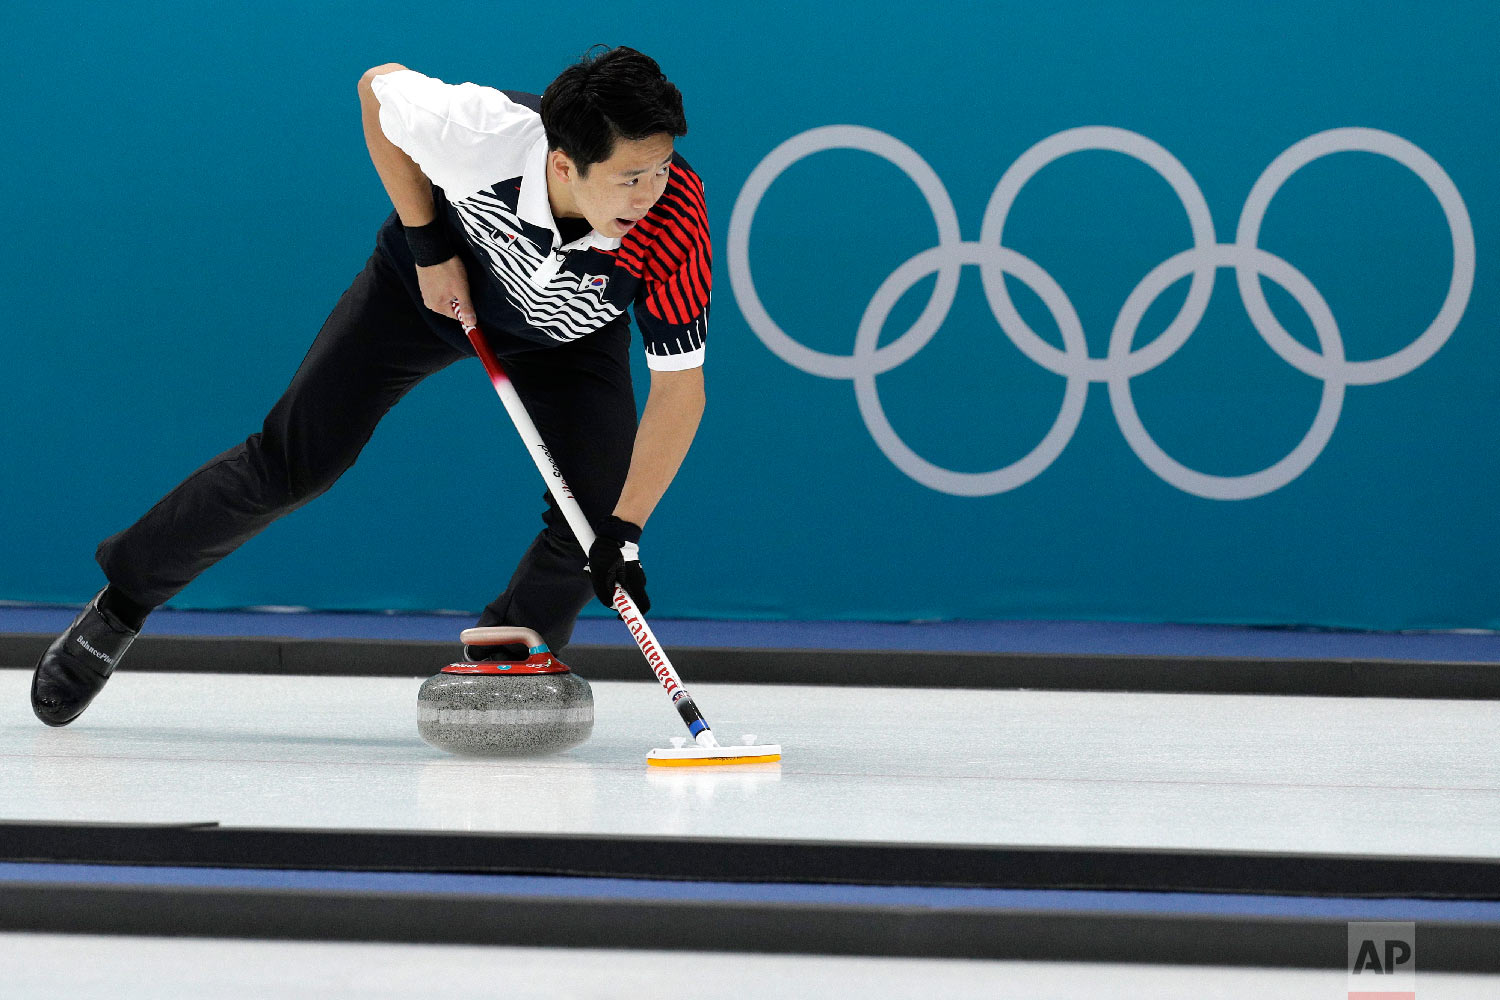 South Korea'sLee Kijeong sweeps ice during their mixed doubles curling match against Olympic Athletes of Russia at the 2018 Winter Olympics in Gangneung, South Korea, Saturday, Feb. 10, 2018. (AP Photo/Aaron Favila)